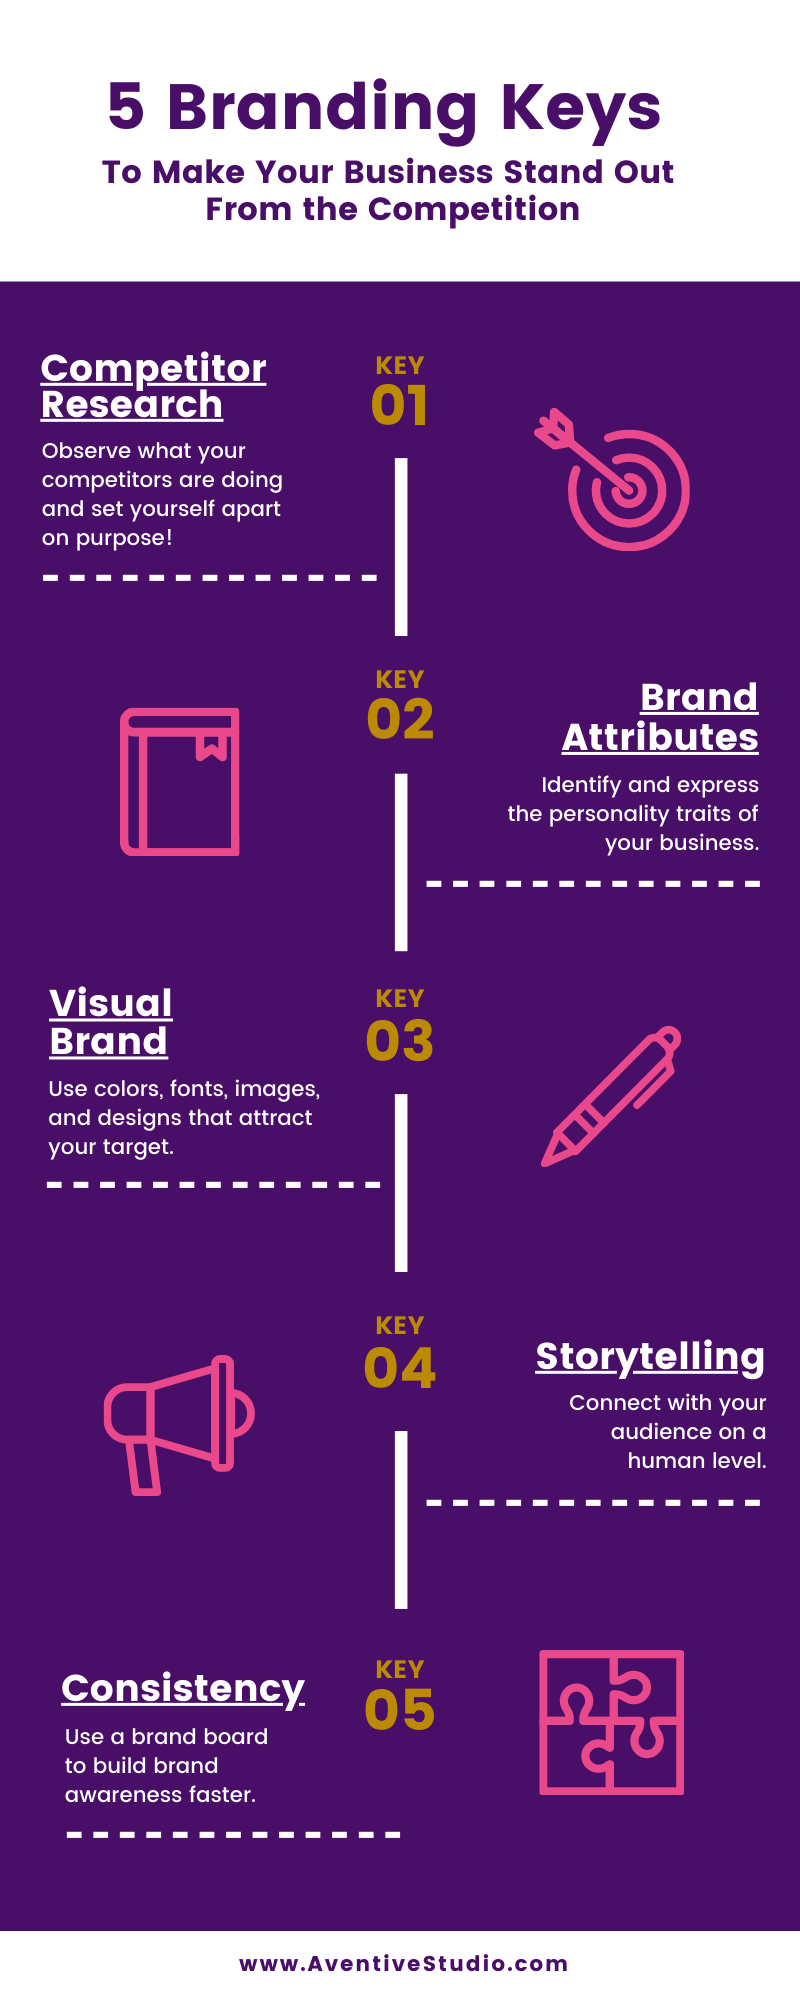 5 Branding Keys to Make Your Business Stand Out From the Competition - Aventive Studio